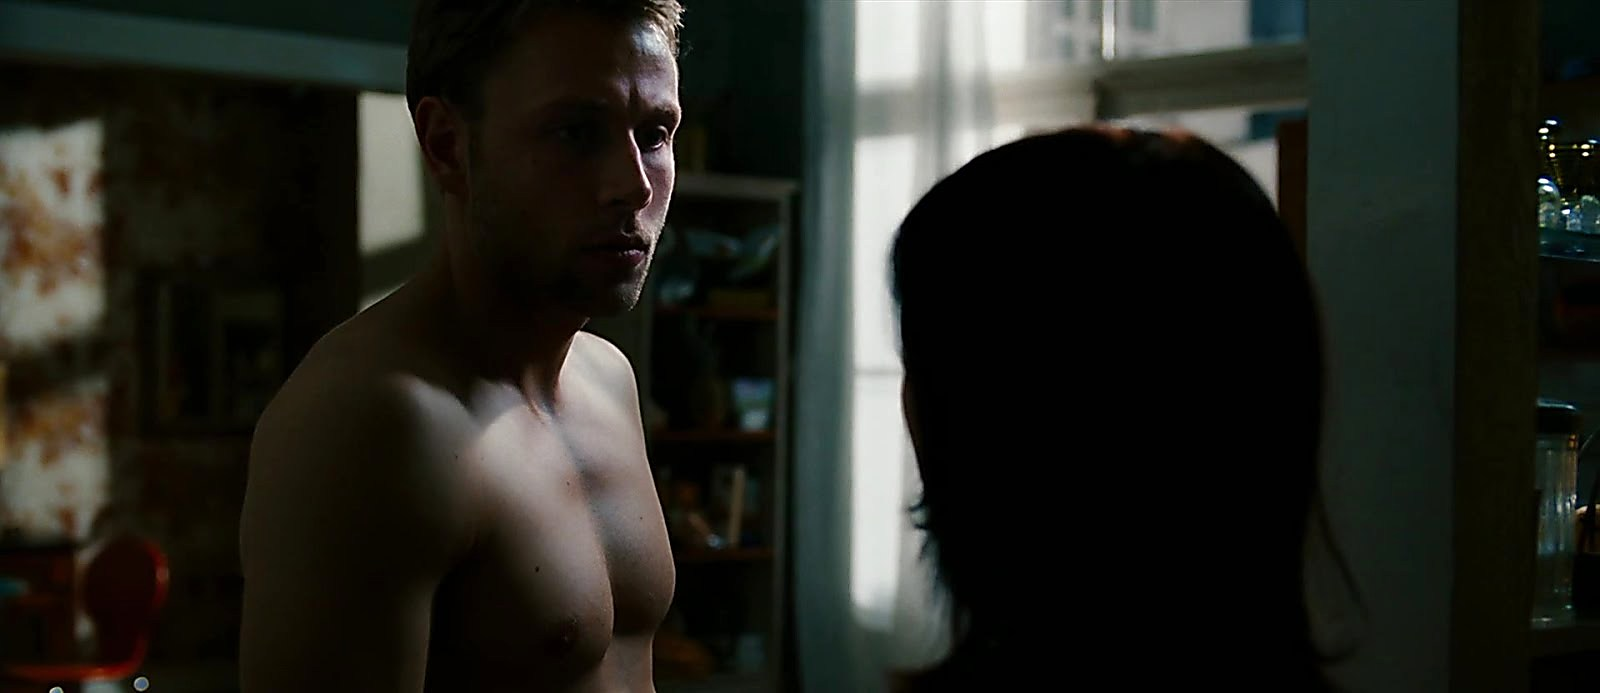 Max Riemelt sexy shirtless scene October 23, 2017, 1pm